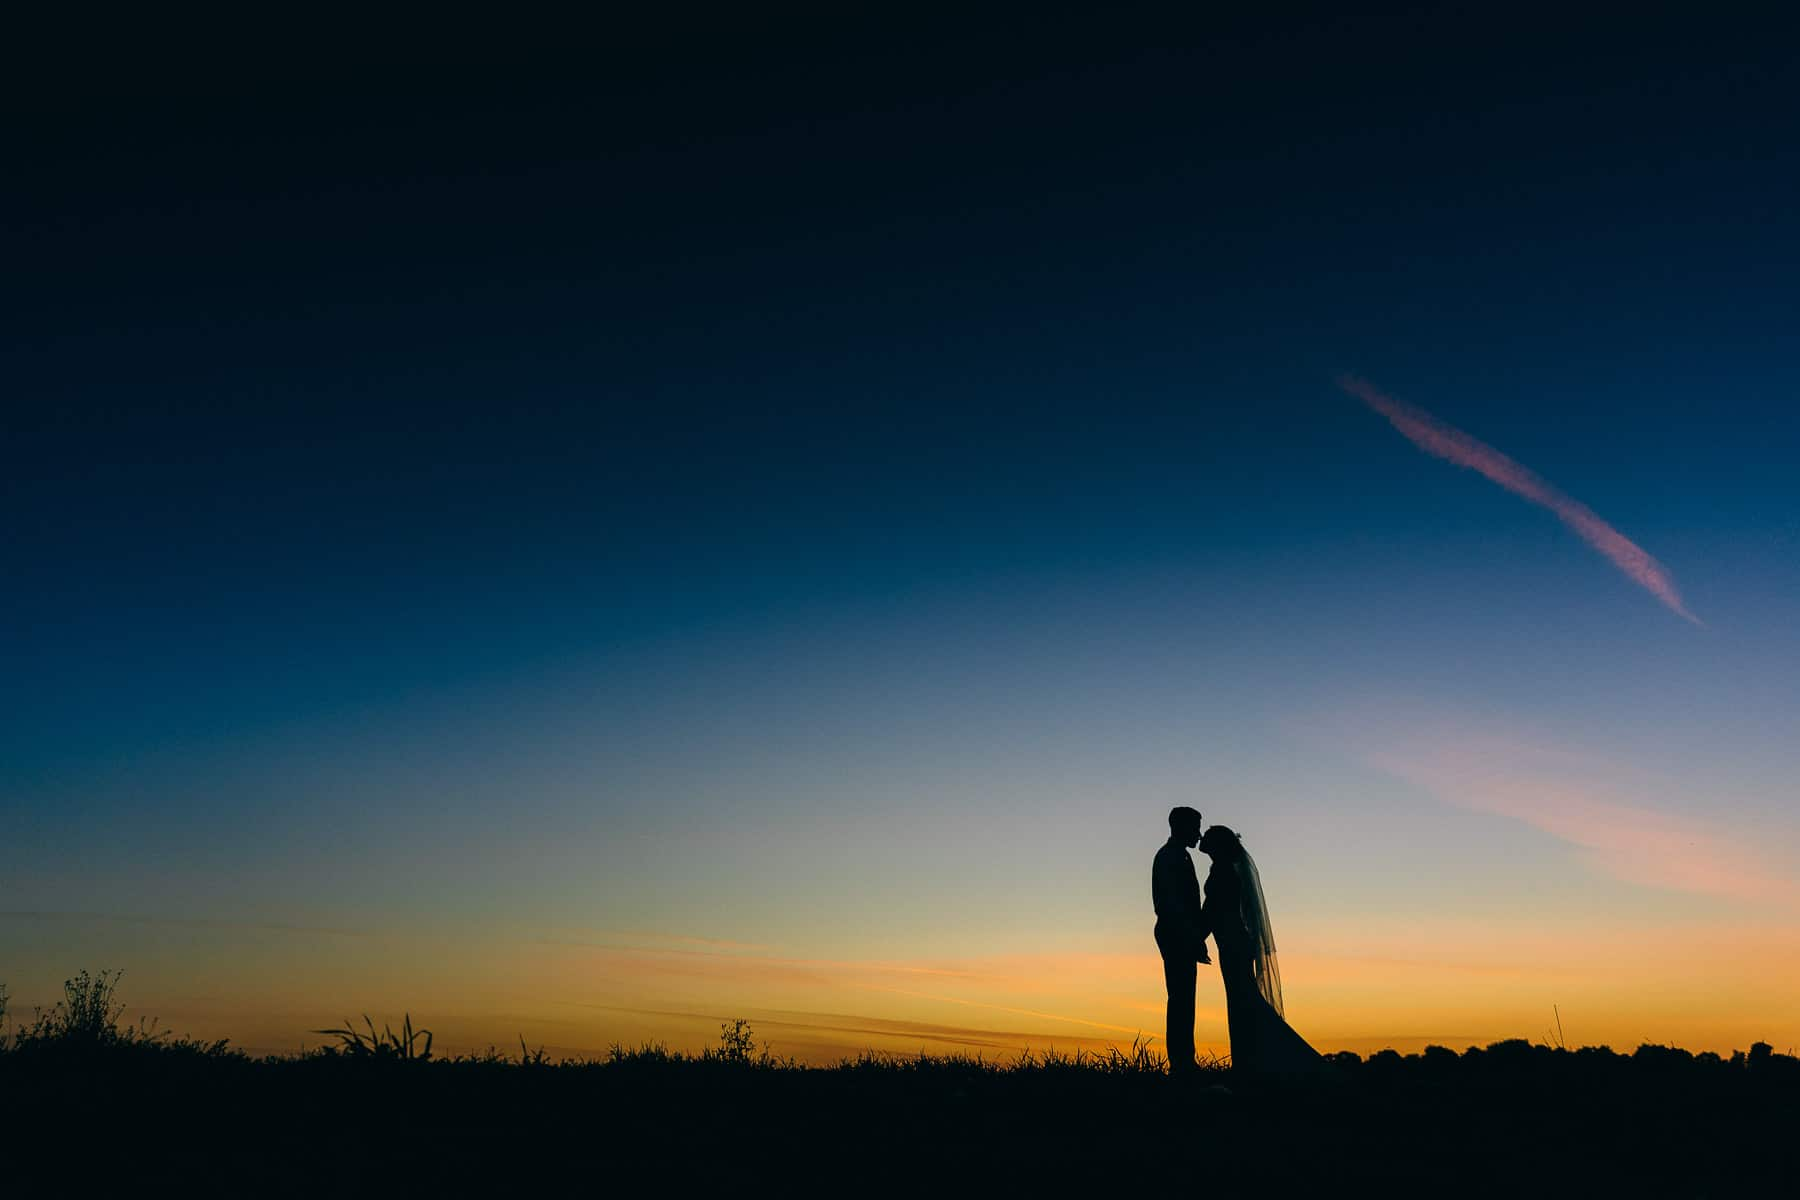 Stunning Silhouette wedding photography after sun down dusk